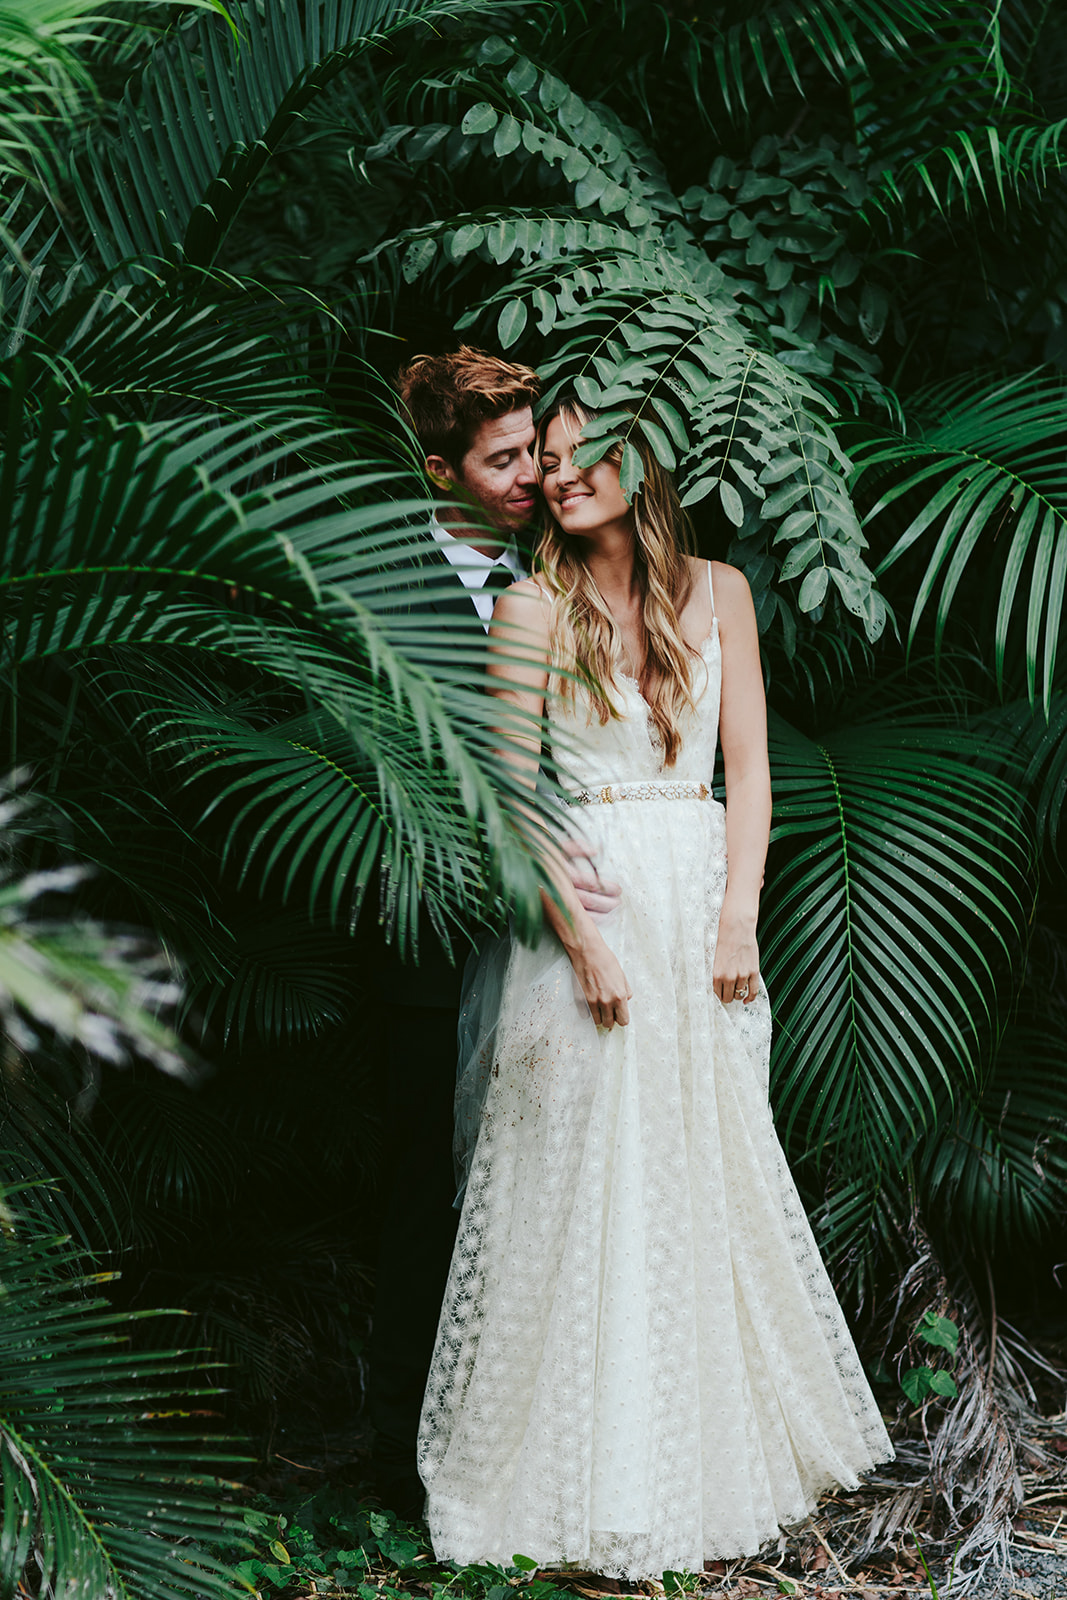 wedding couple portrait with lush tropical greenery background